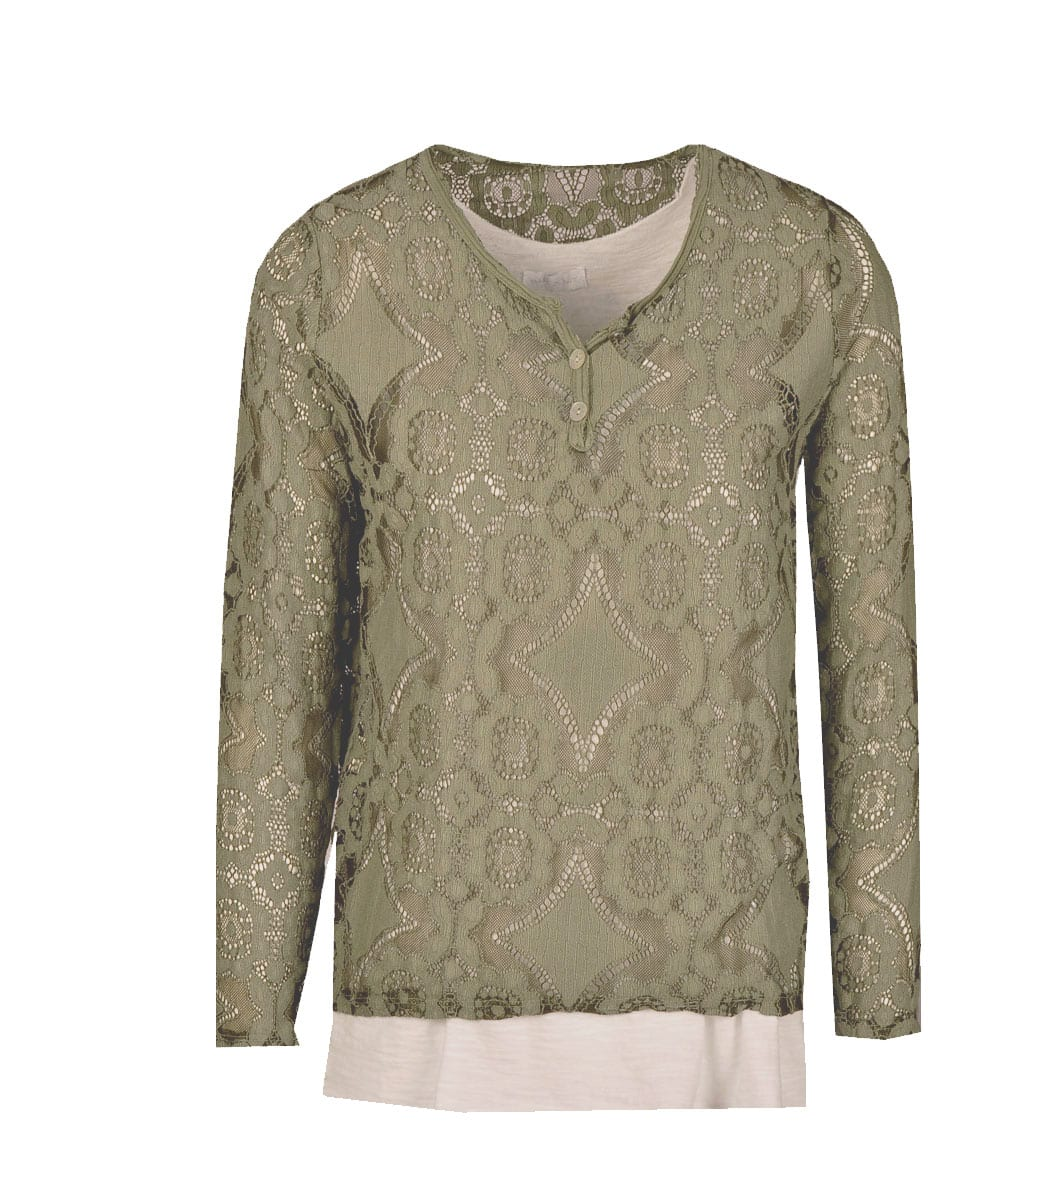 Lace double layered top